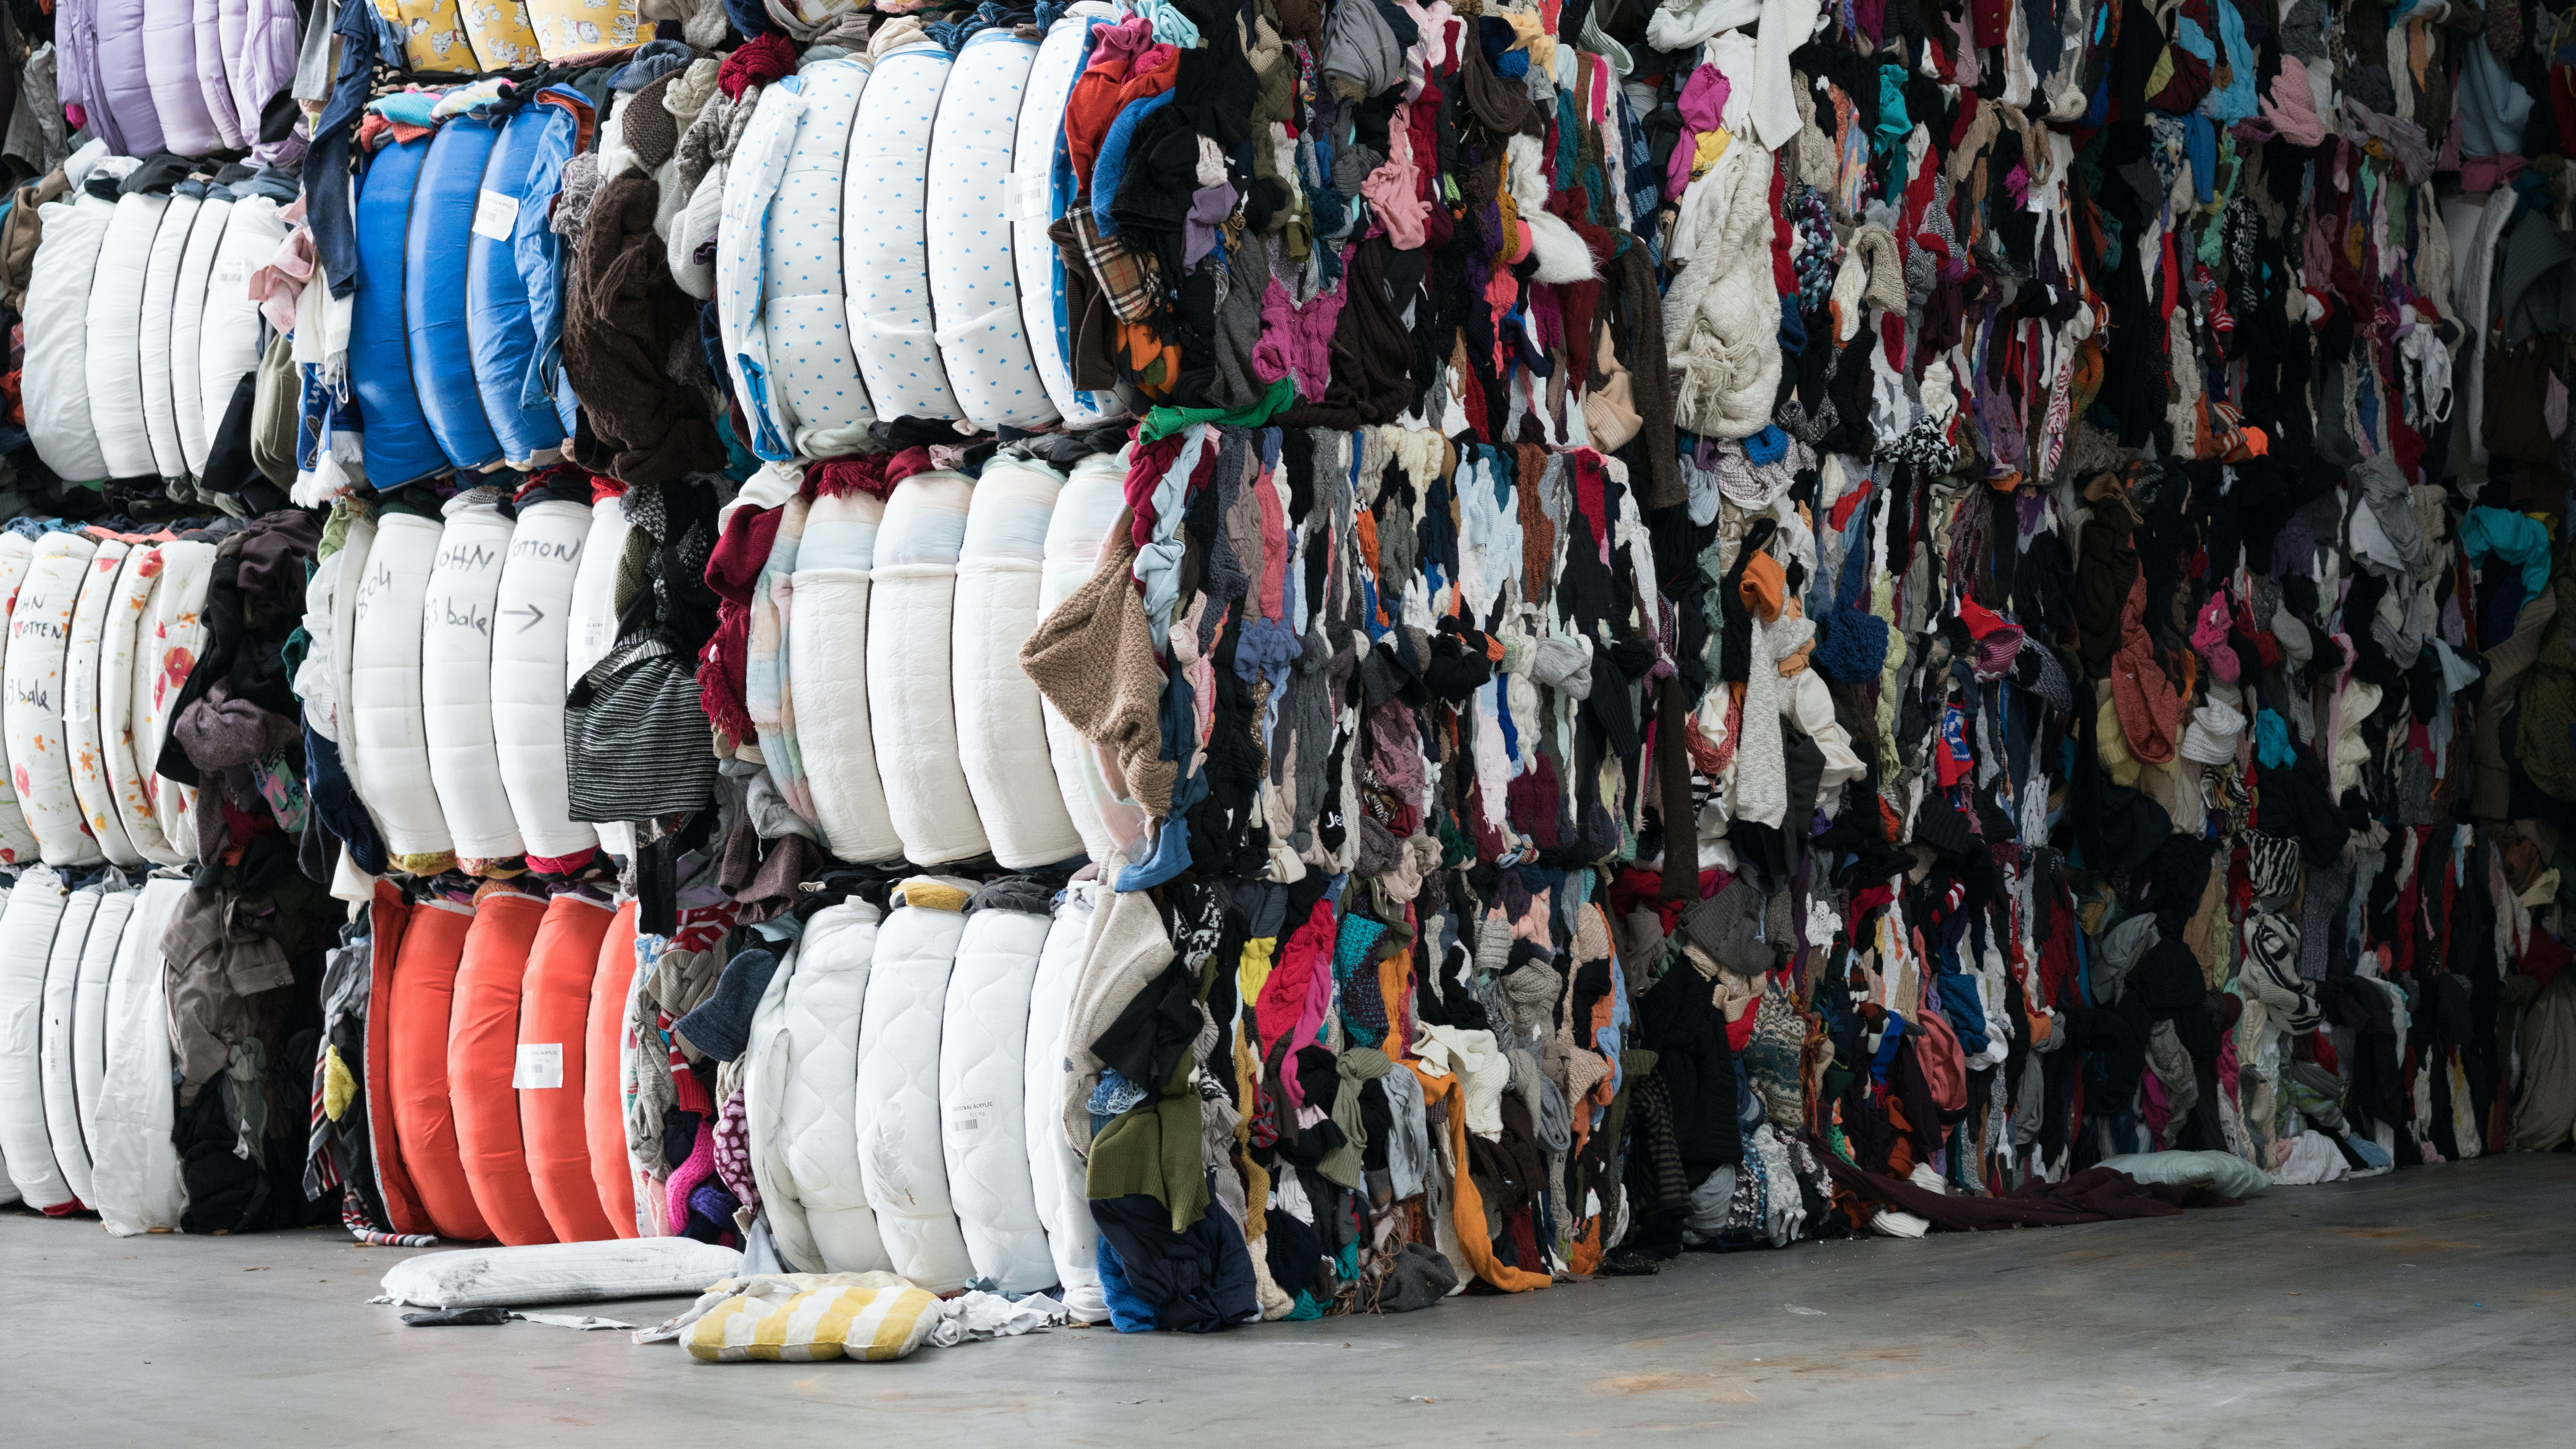 Used clothing ready for recycling | Source: Shutterstock